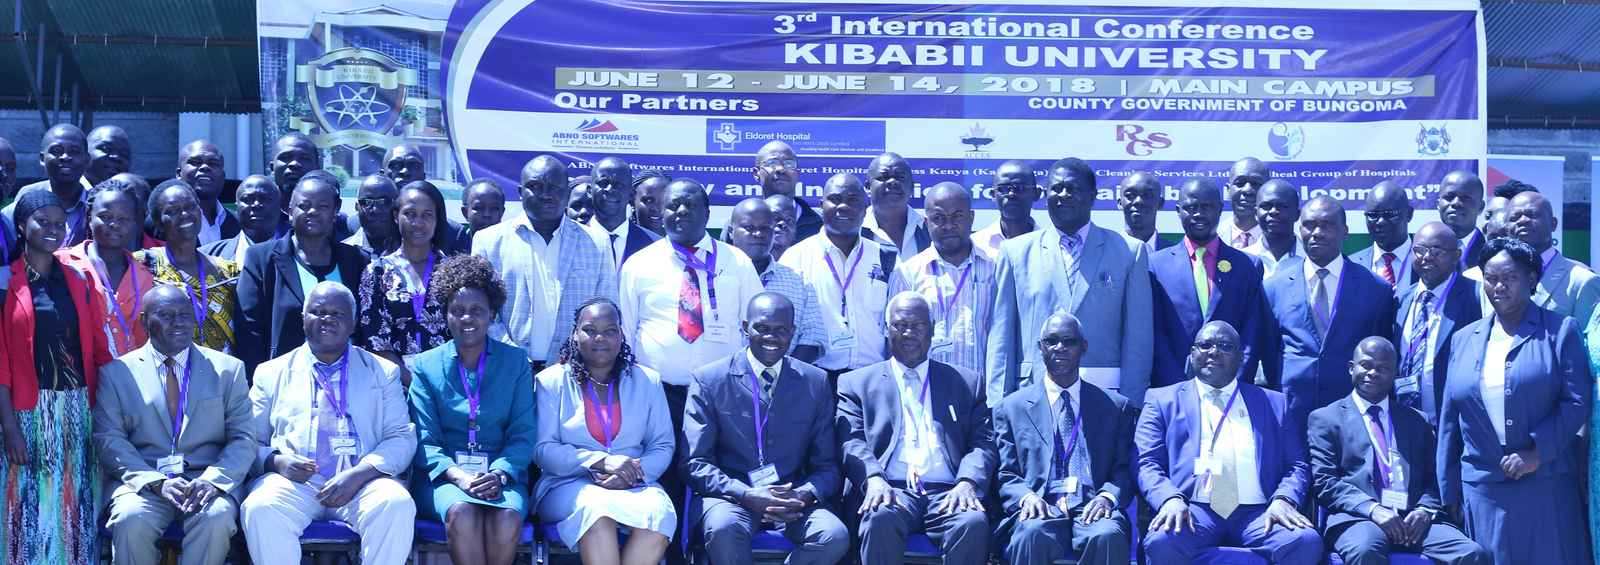 3rd Kibabii University International Conference Gallery